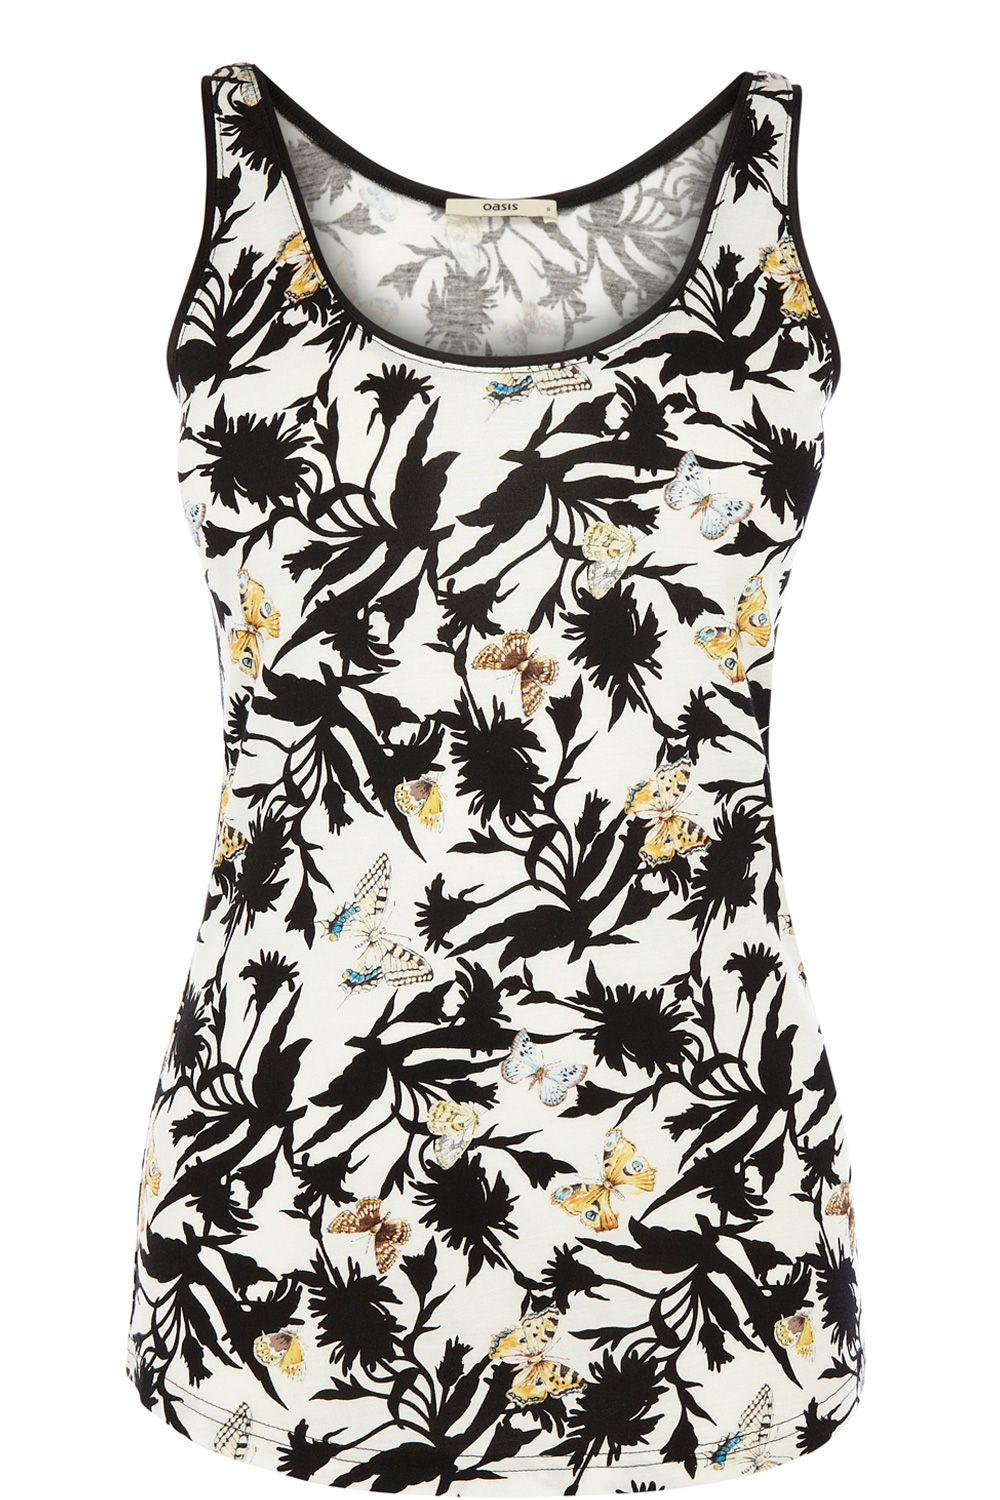 Satin trim shadow butterfly print vest